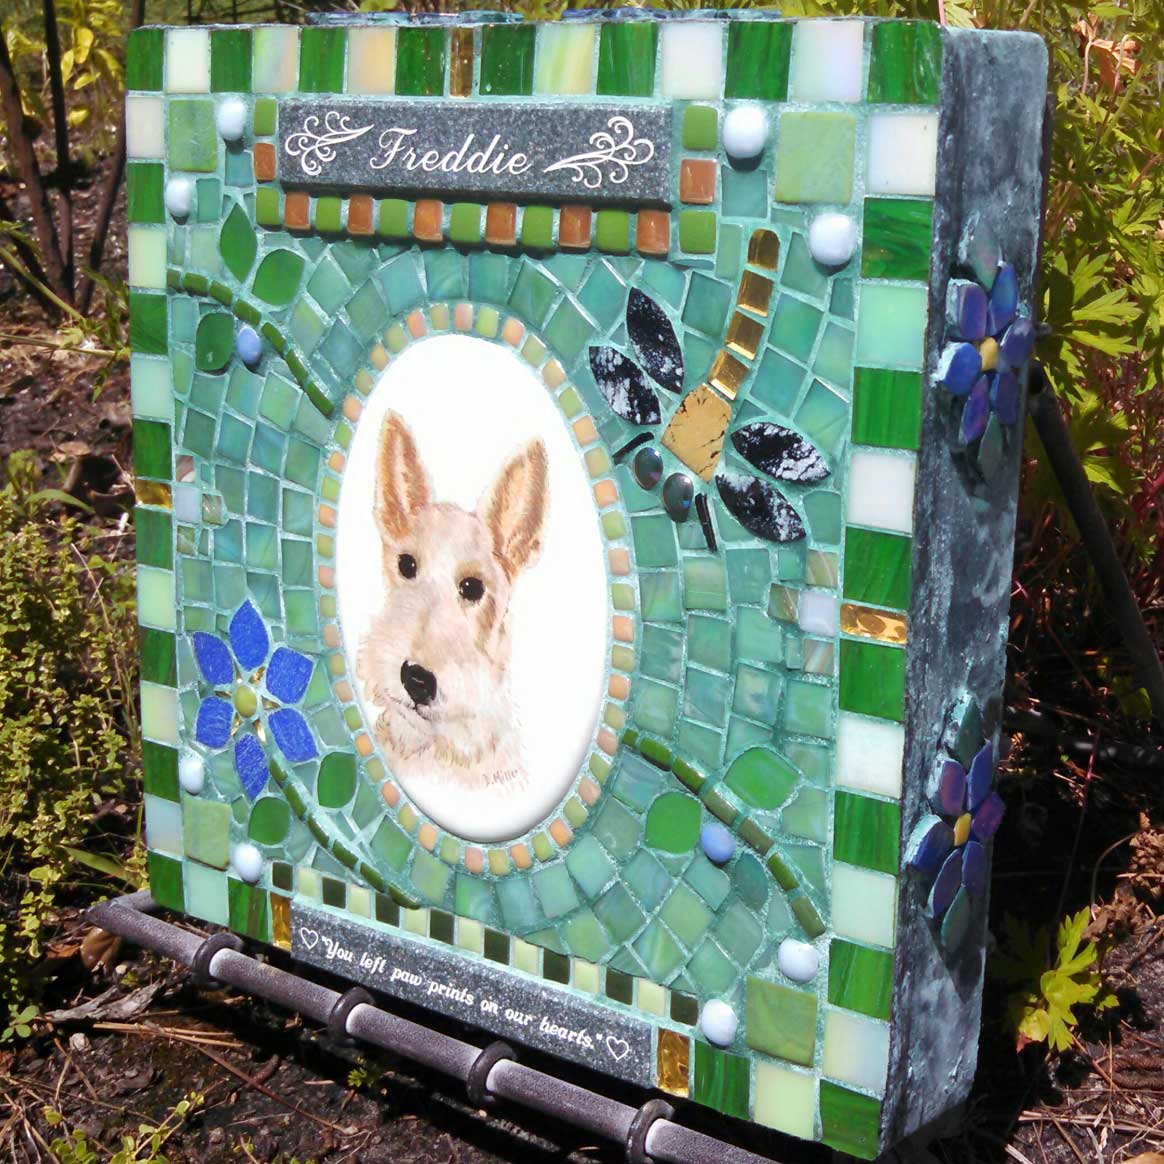 Mosaic Pet Portrait Memorial Stone of Dog Freddie's Dragonflies by Water's End Studio Artist Linda Solby